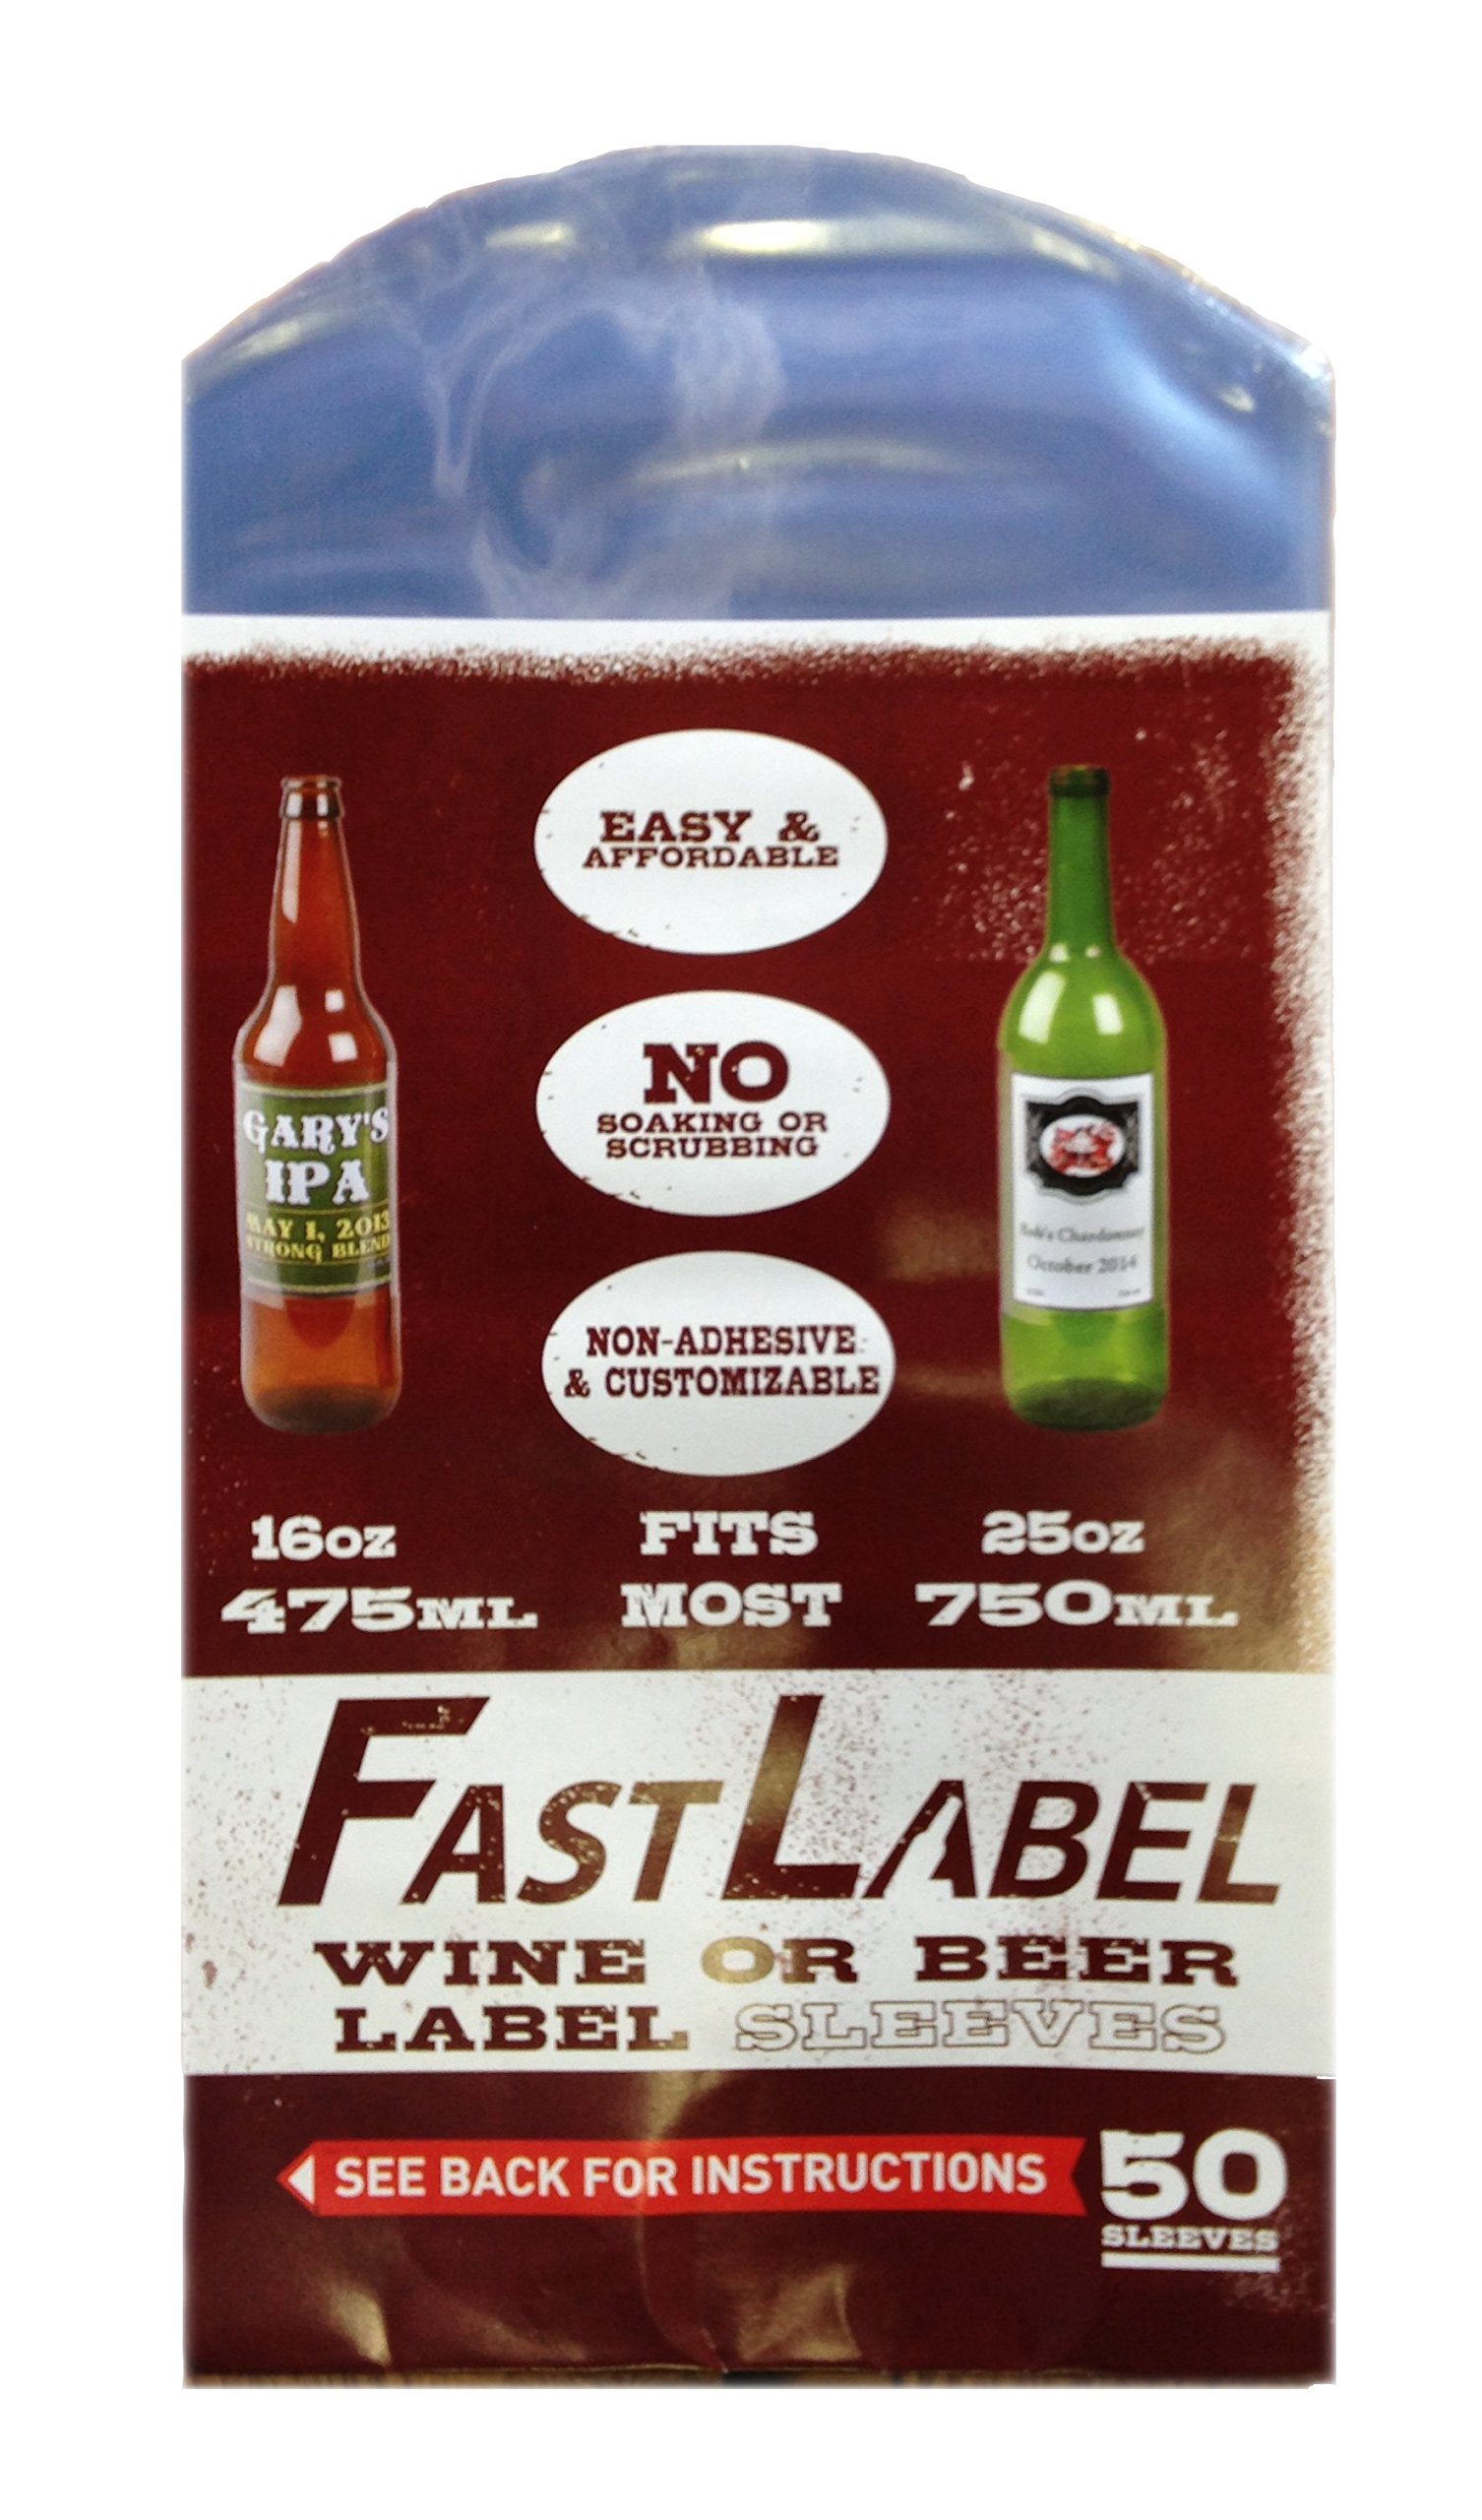 FastLabel Fermentation Accessories - Standard Wine Bottle Labels - Never scrub a bottle again brought to you by FastFerment